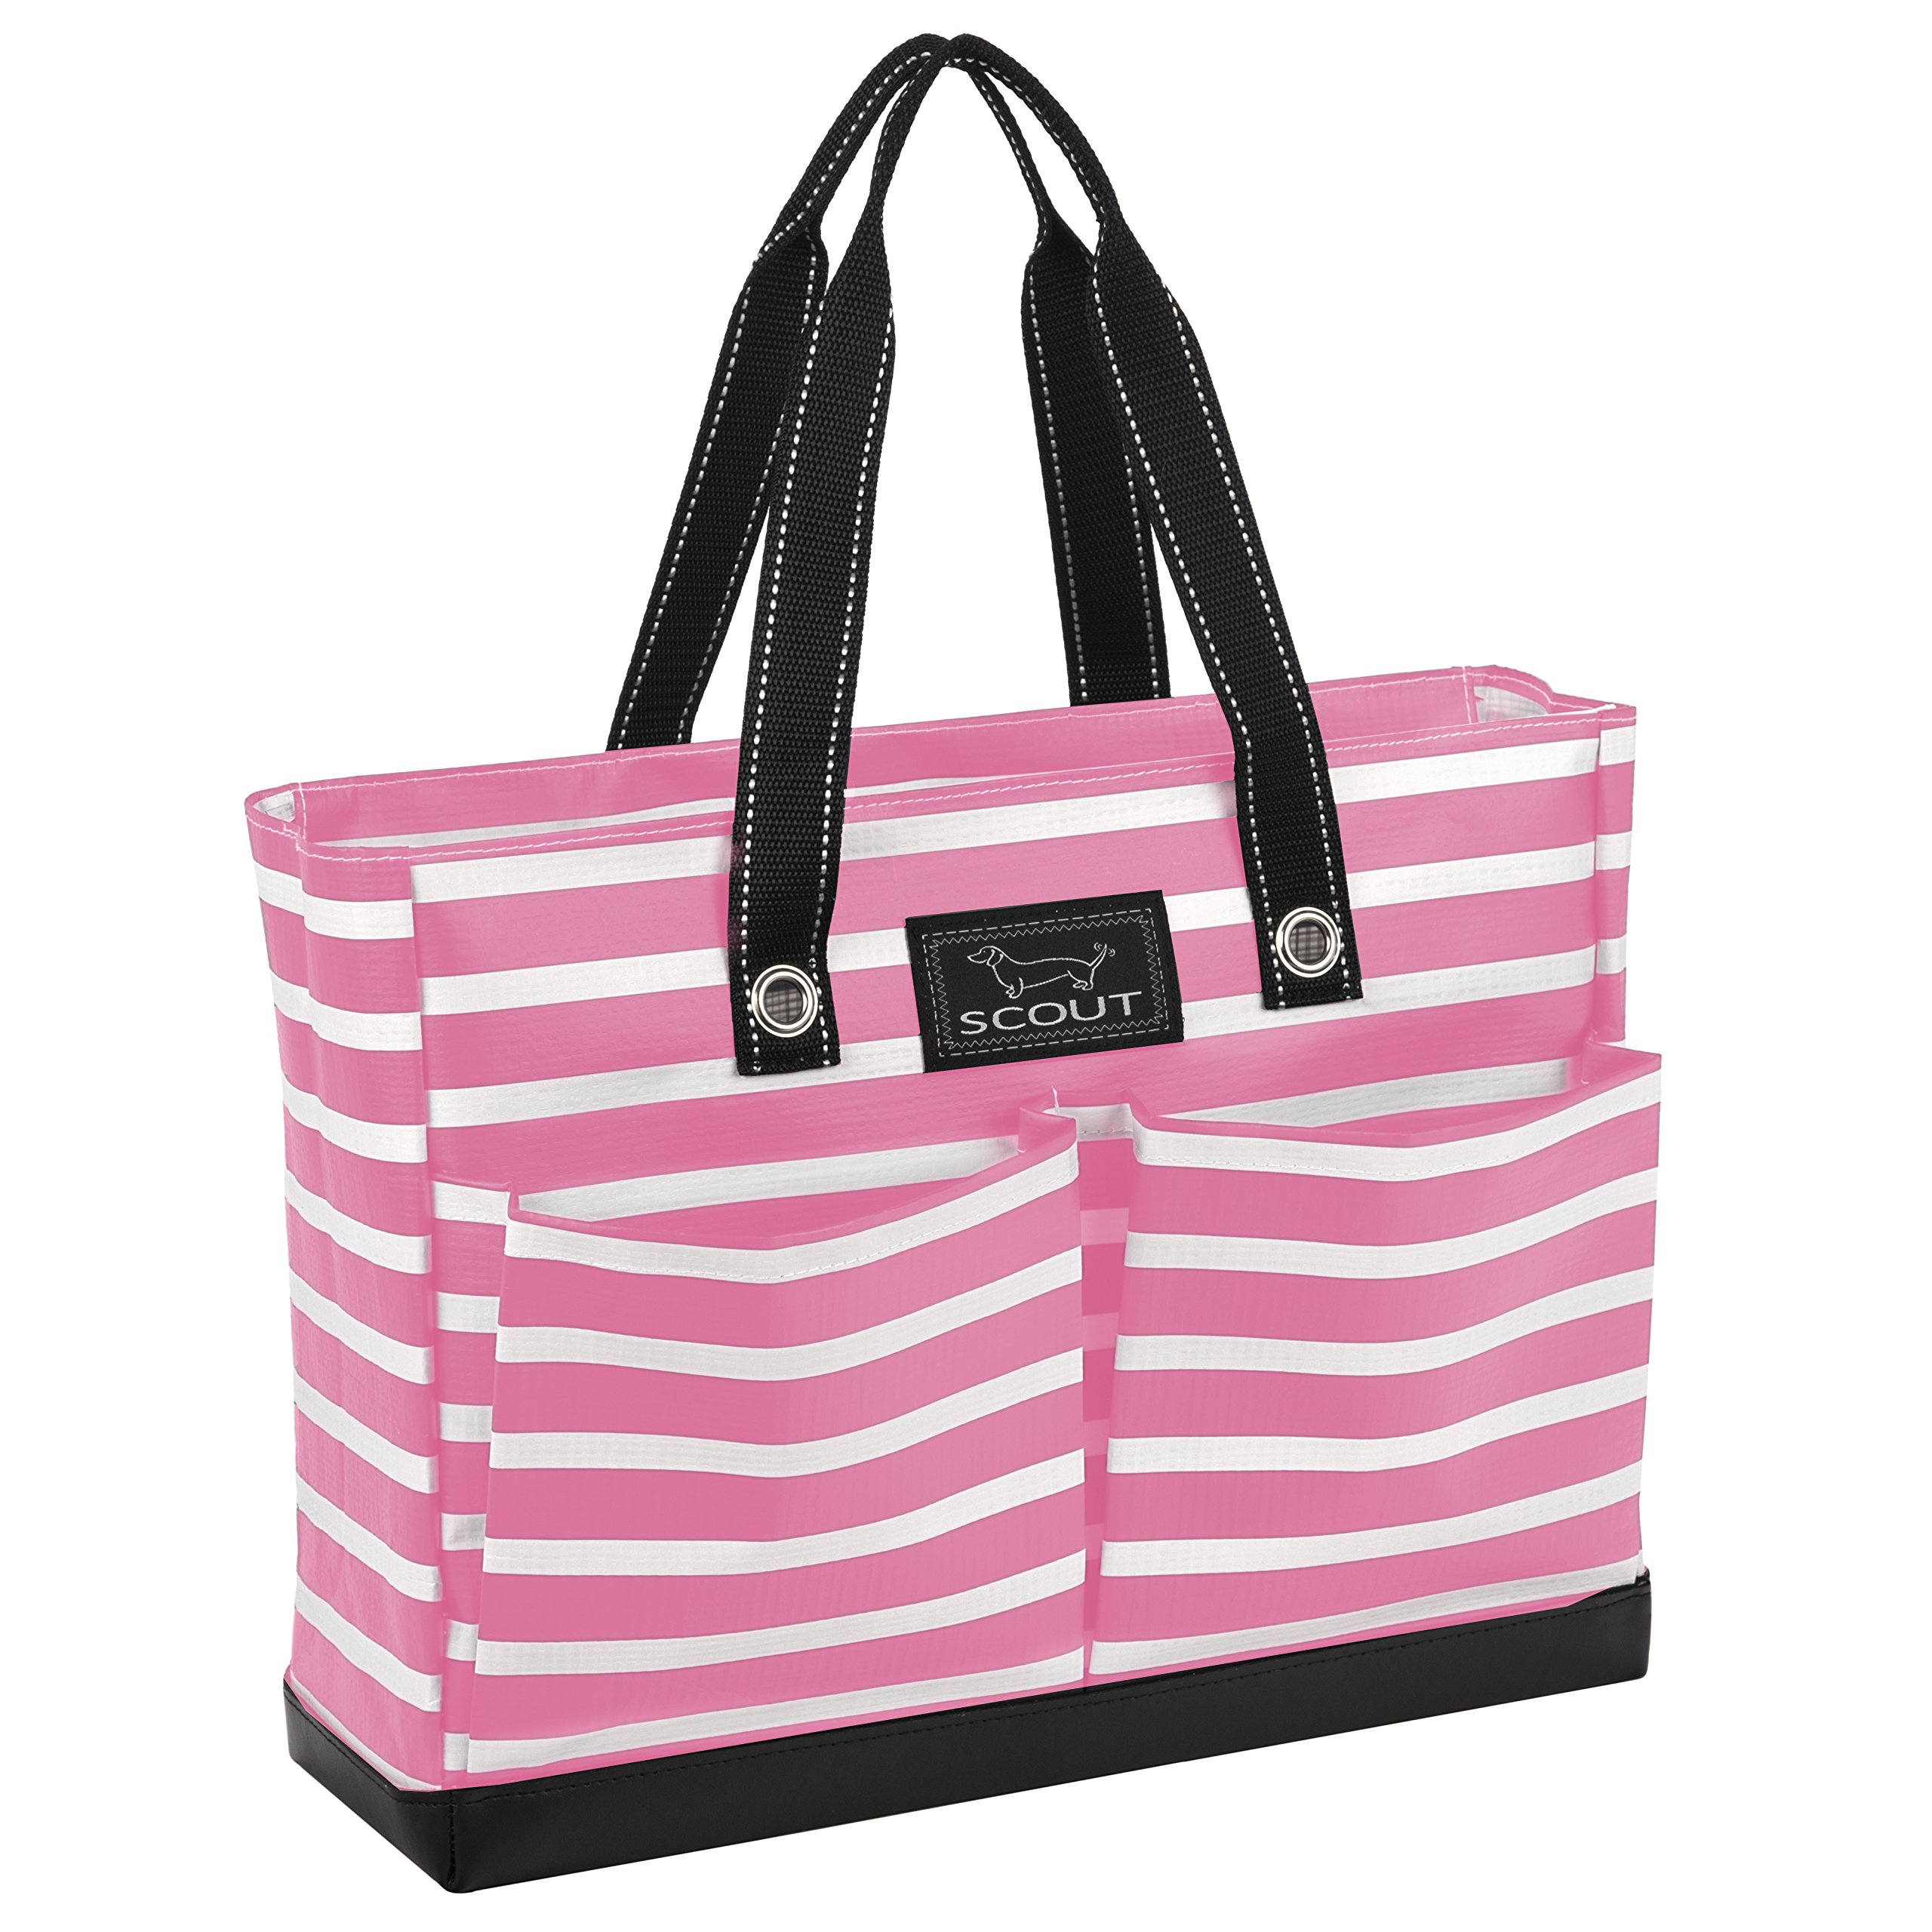 SCOUT Uptown Girl Medium Multi-Pocket Tote Bag, Water Resistant, Zips Closed, Panama Pink